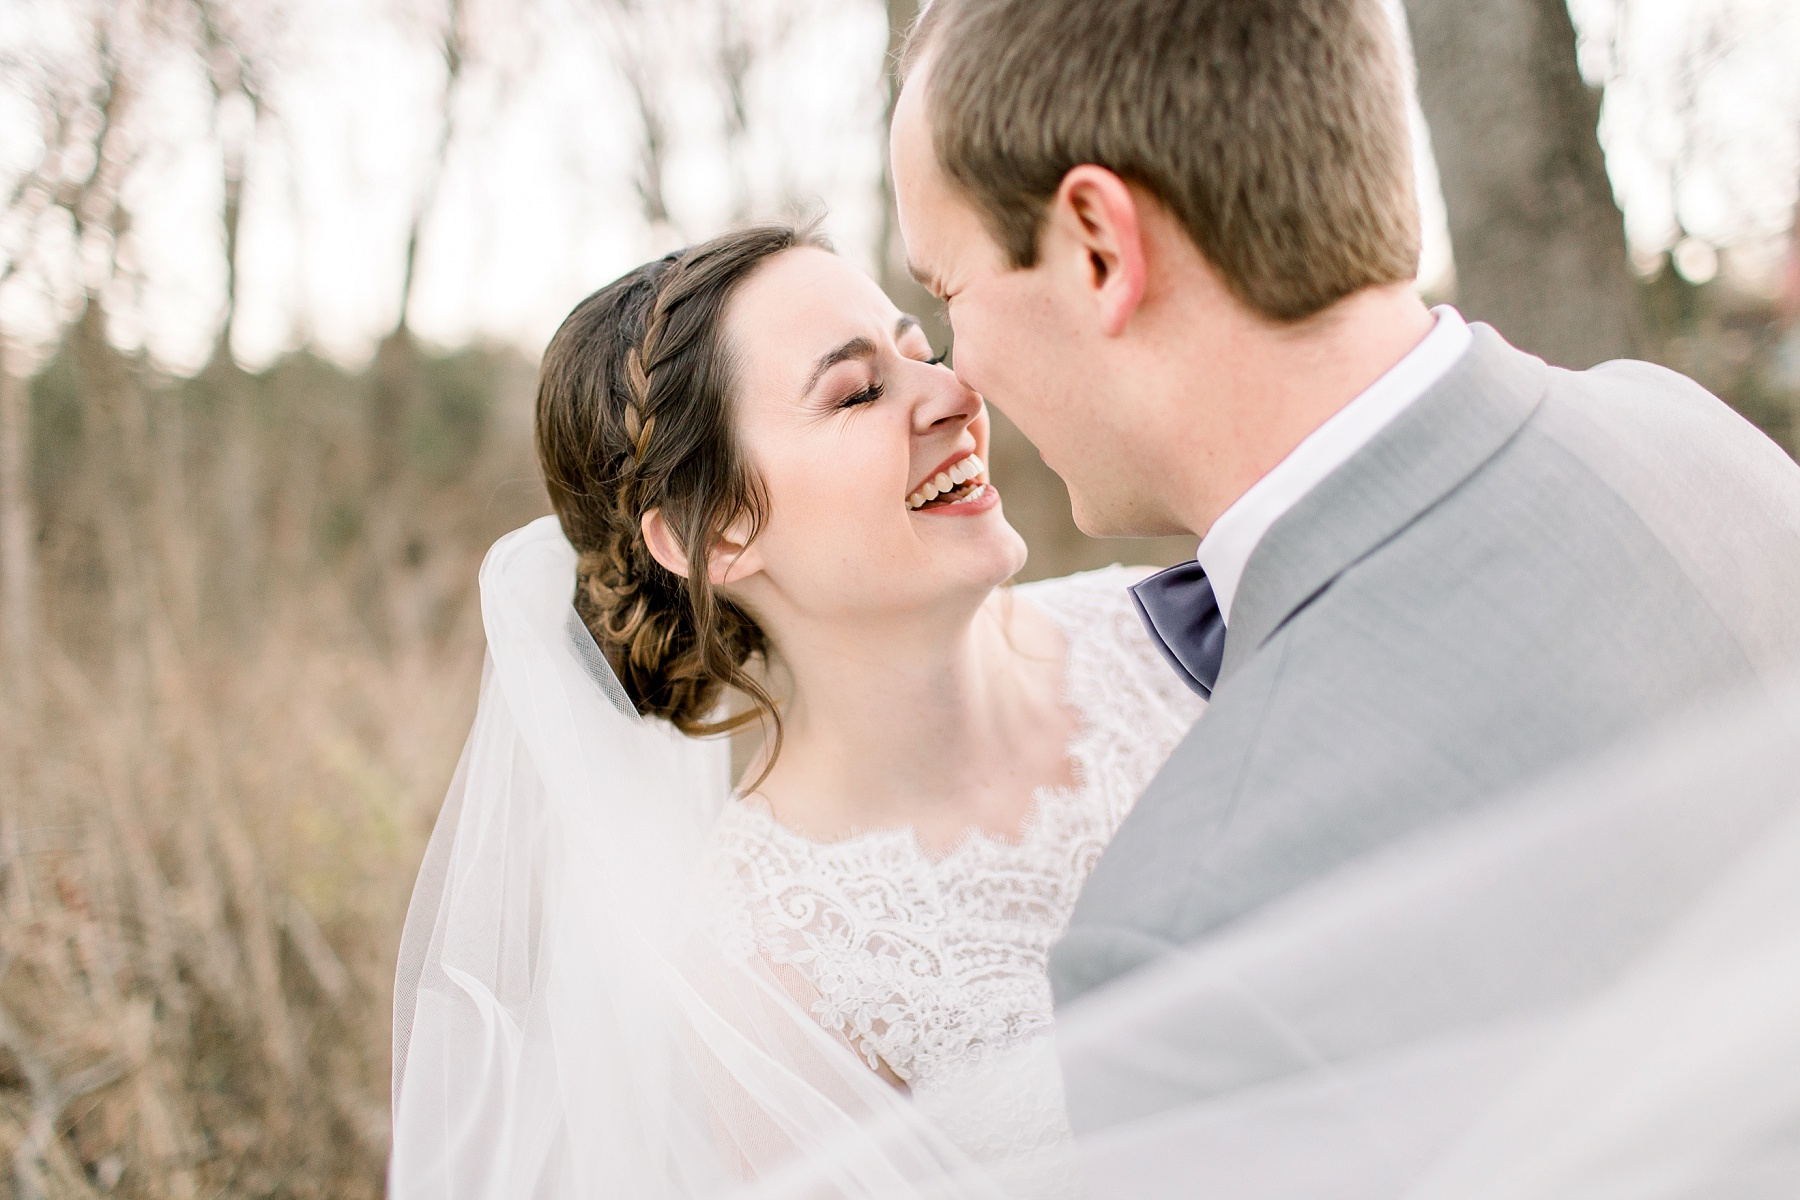 adventurous-authentic-wedding-engagement-photography-kansas-city-elizabeth-ladean-photo_5493.jpg